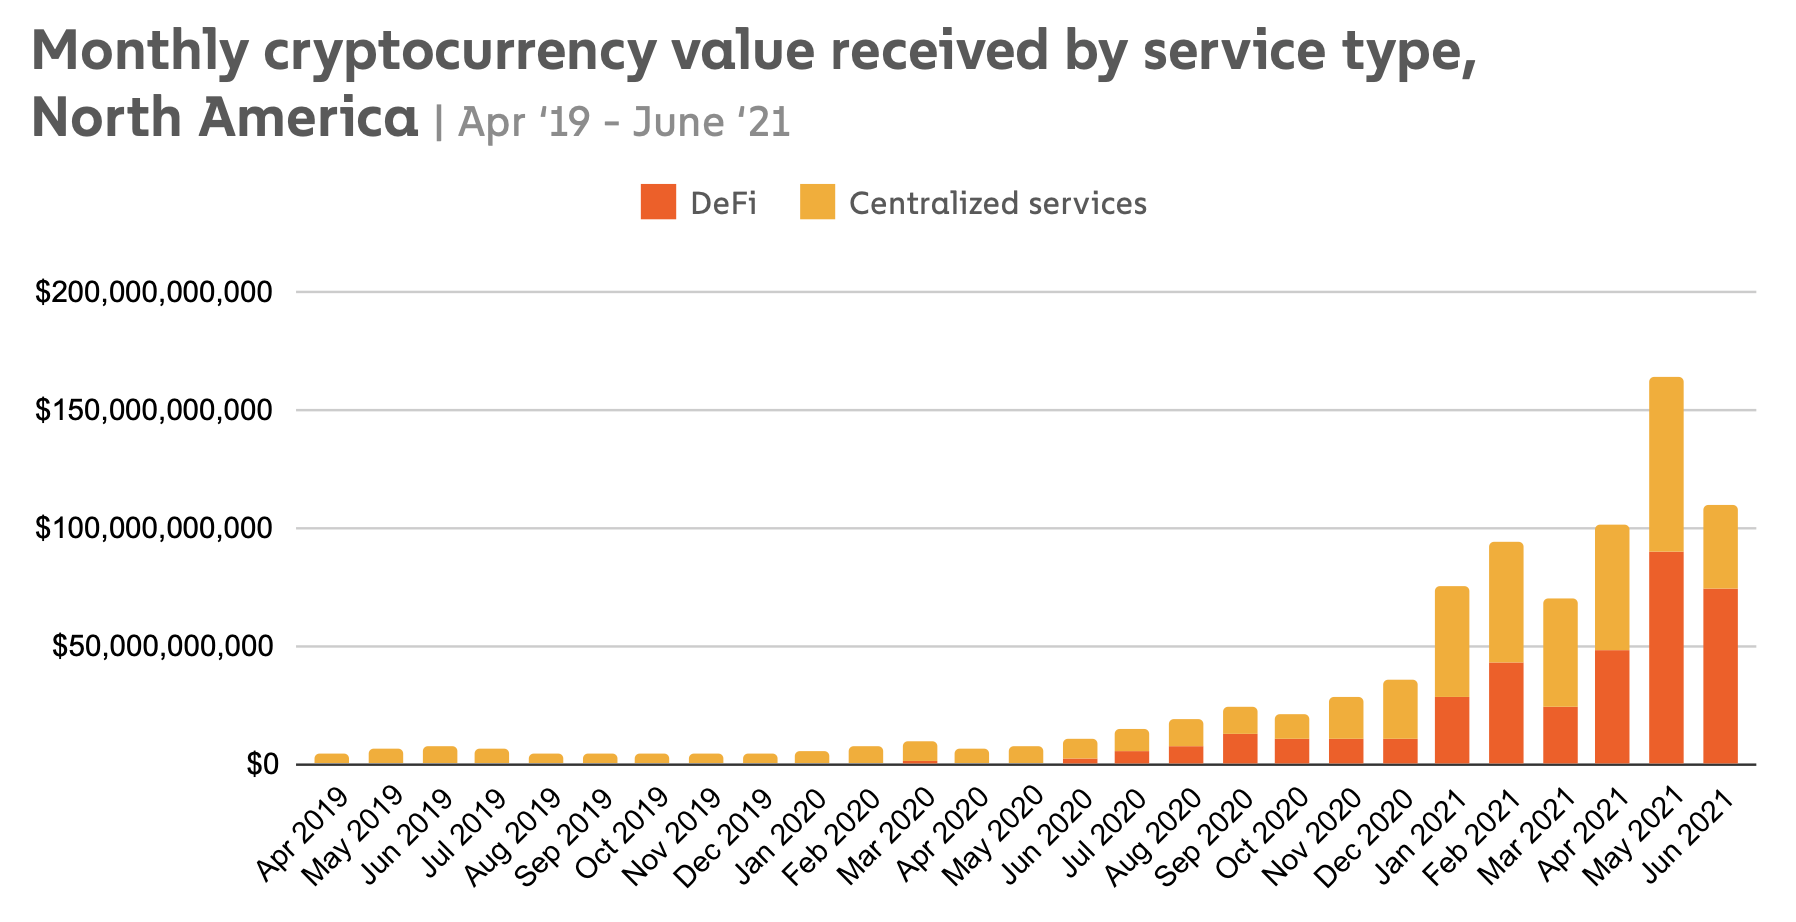 Report: Driven by DeFi, North America's crypto volume increased 1,000% year-over-year1